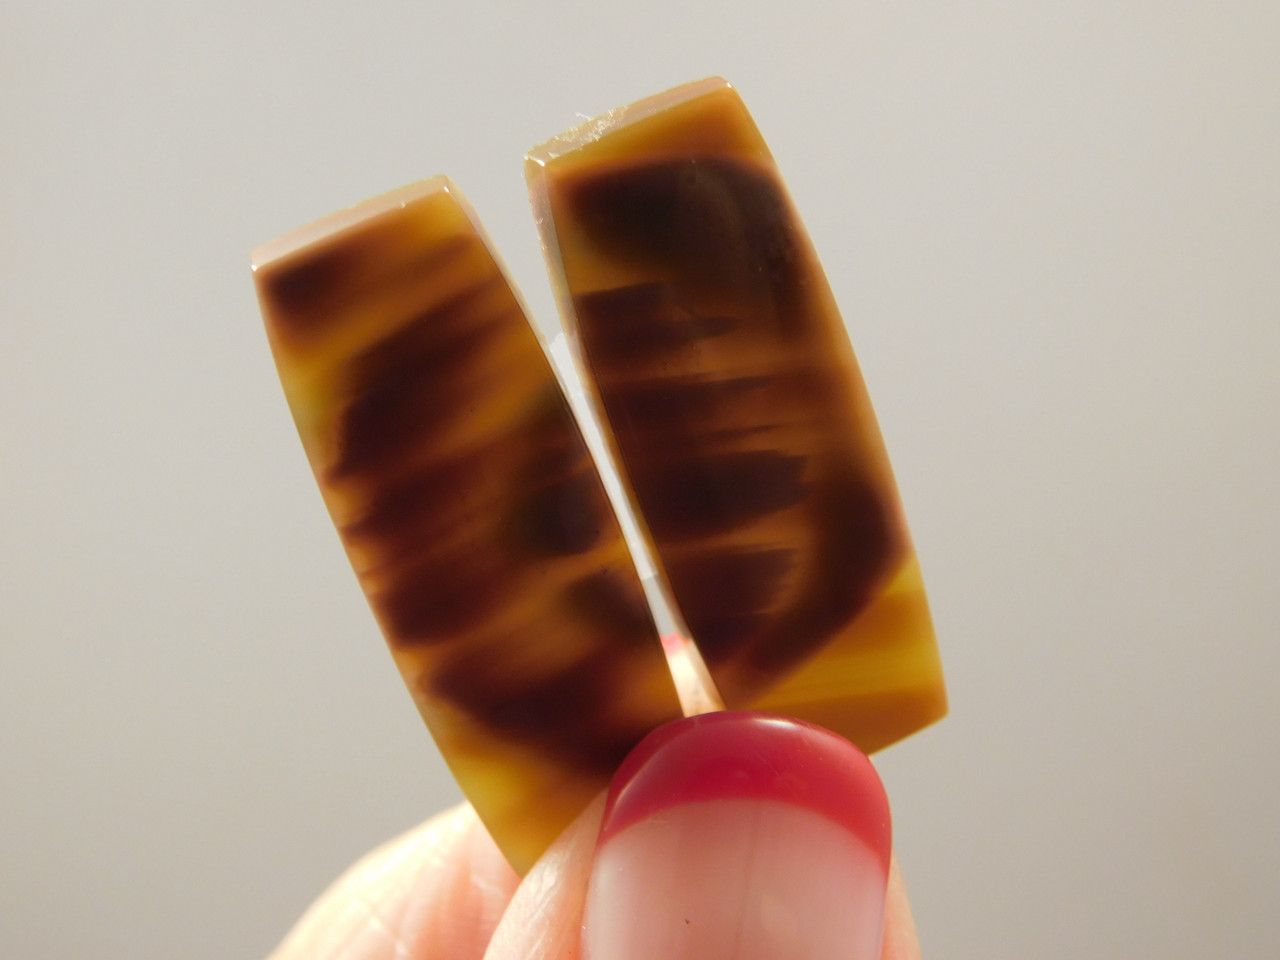 Royal Imperial Jasper Matched Pair Cabochon for Jewelry Making #4